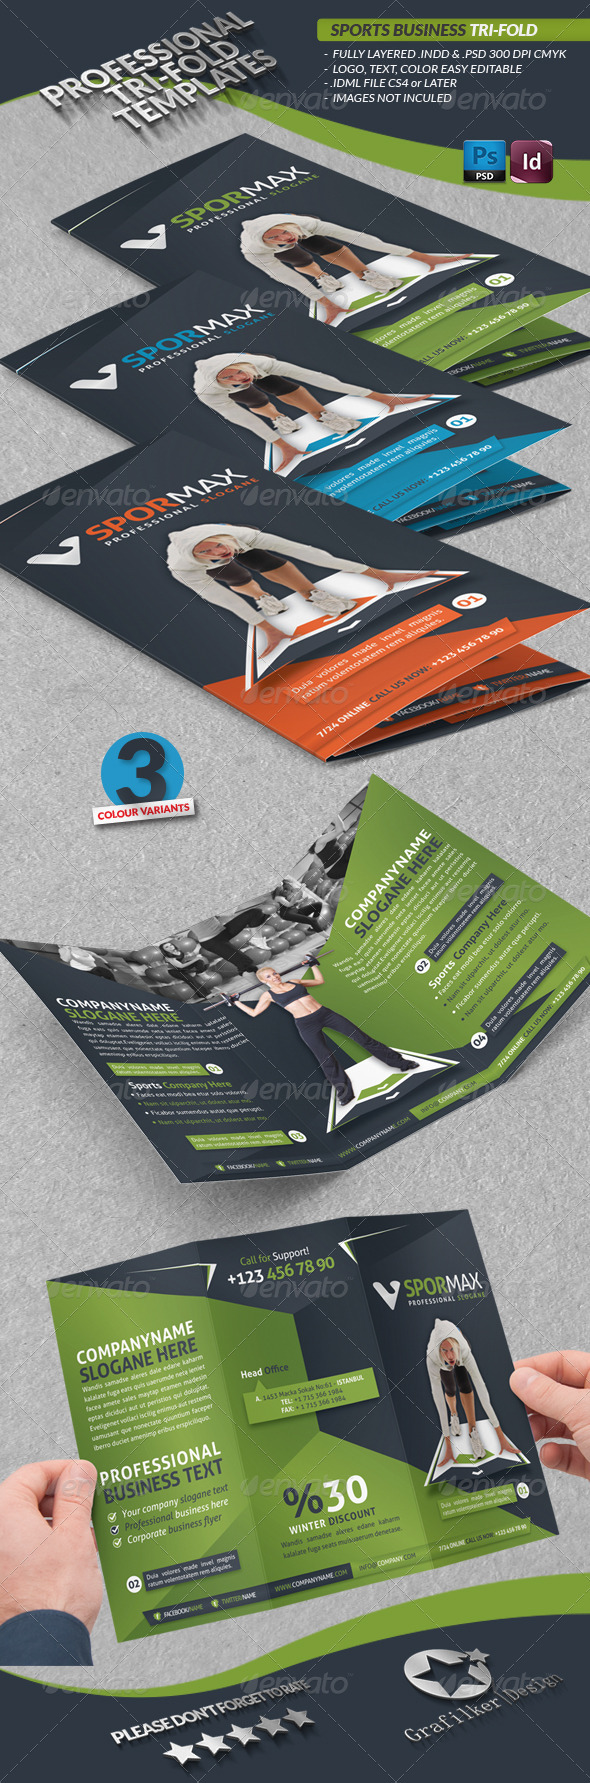 Sports Business Tri-fold - Brochures Print Templates